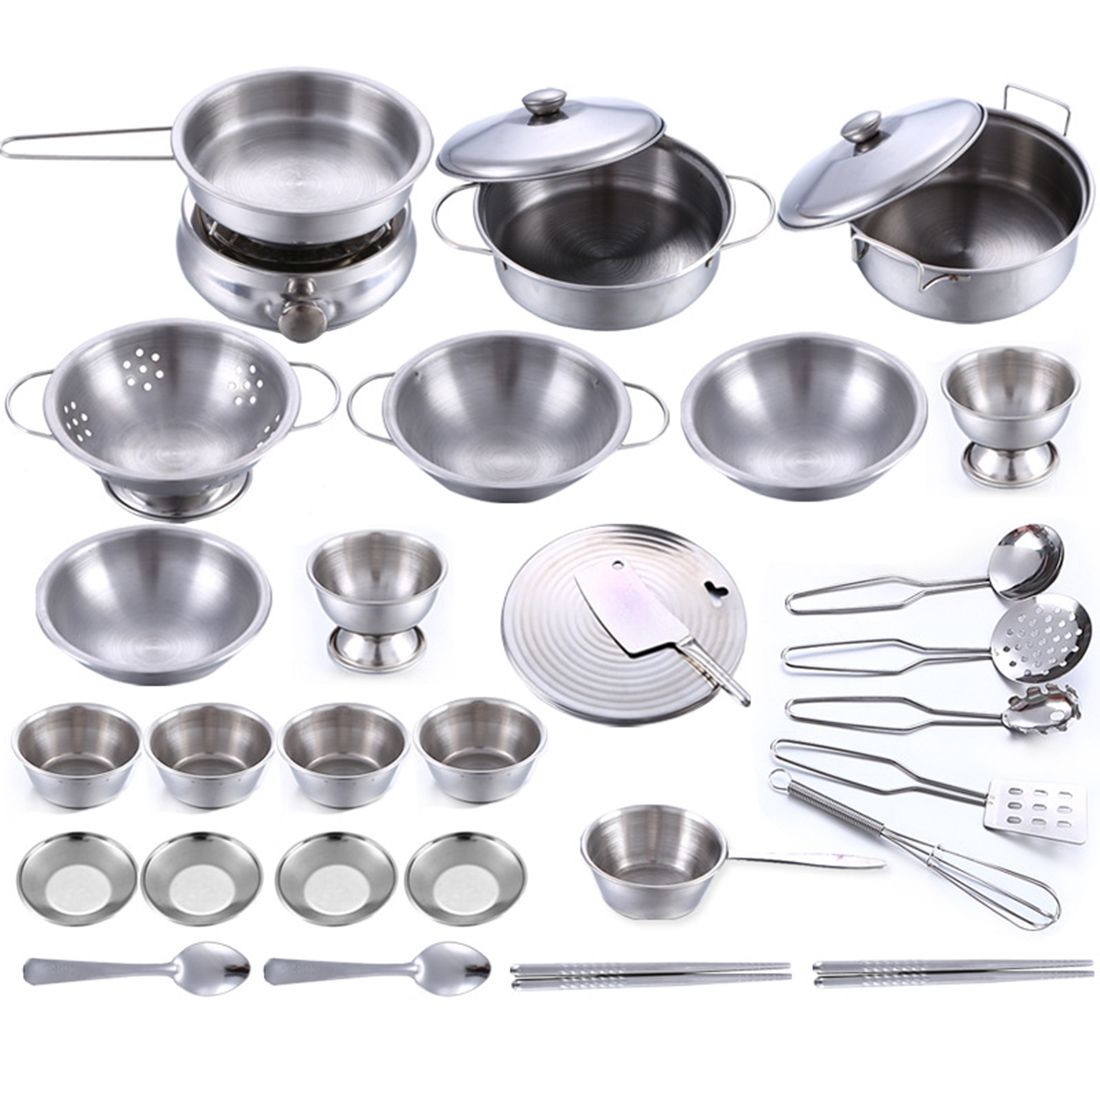 32Pcs Stainless Steel Kids Kitchen Toy Cooking Cookware Children Pretend & Play Kitchen Playset Silver by